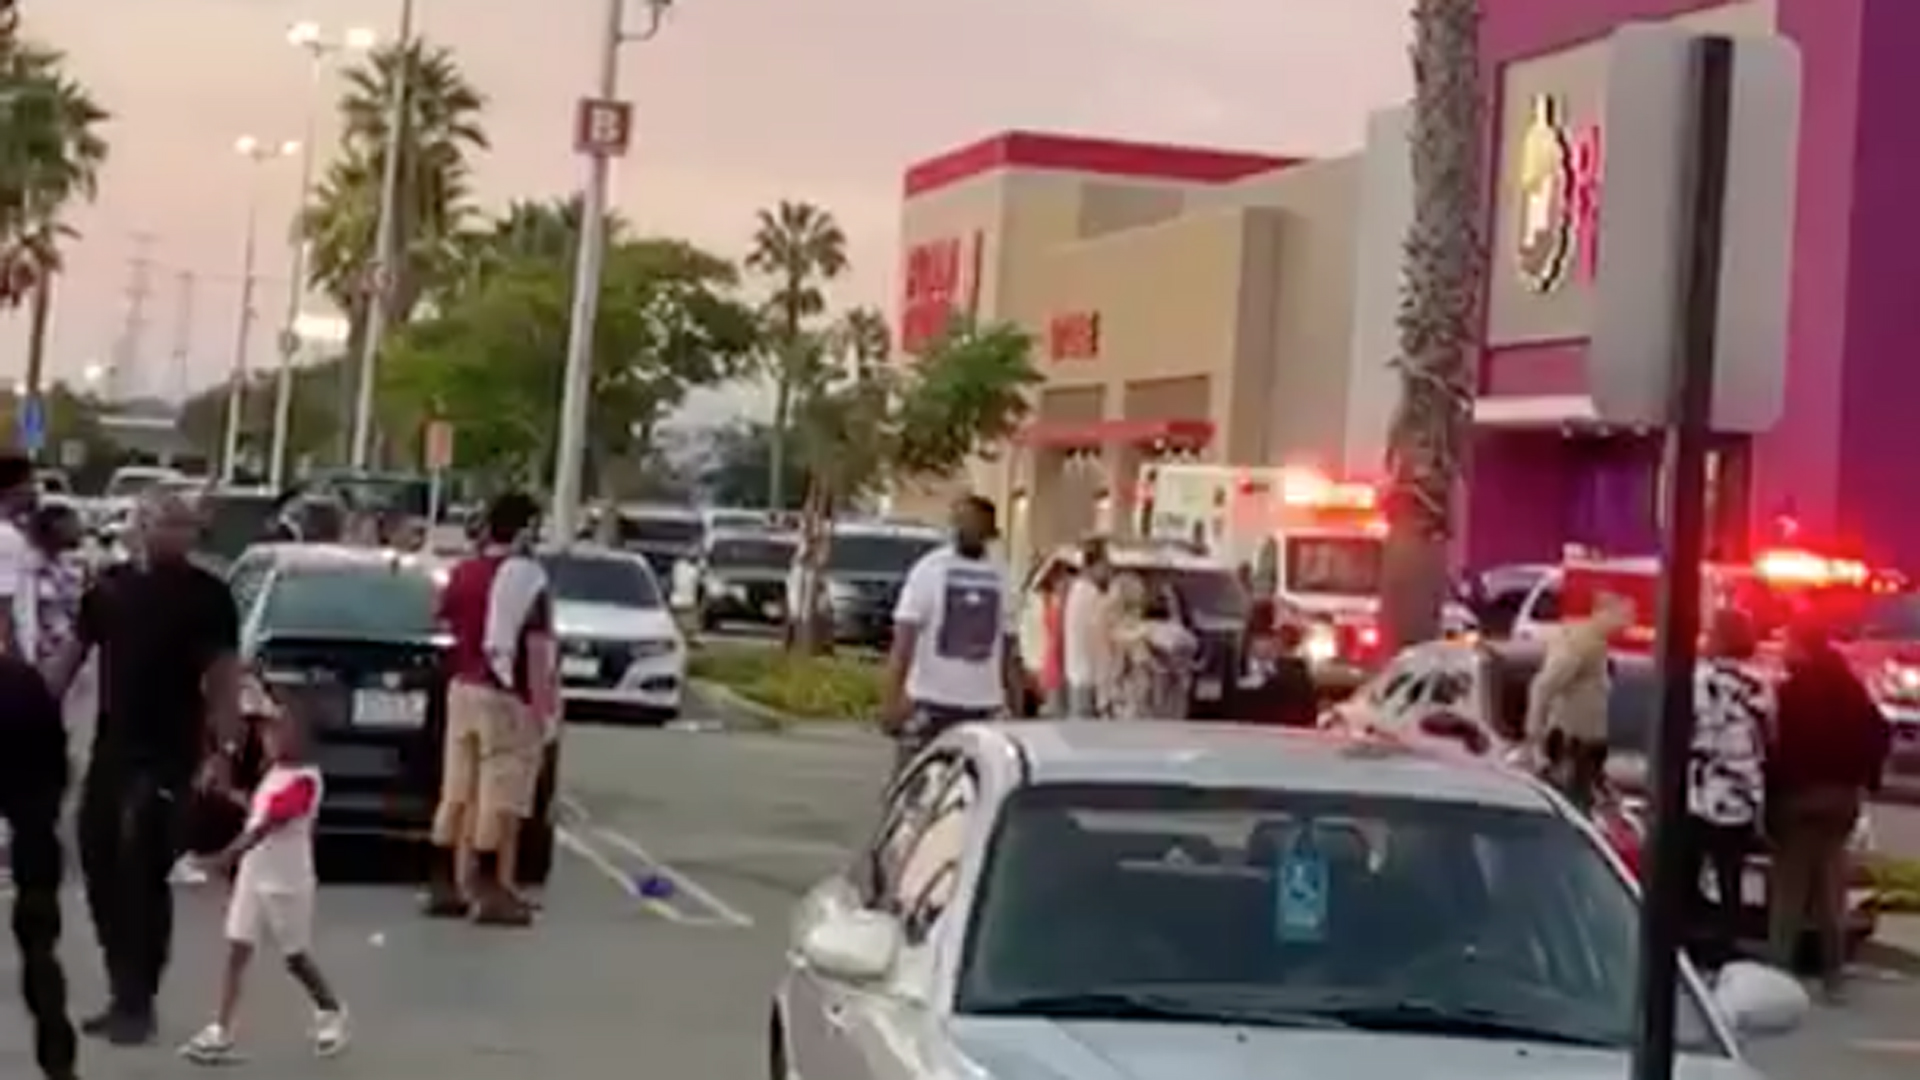 A woman was stabbed at a John's Incredible Pizza Co. location in Carson on Sept. 15, 2019. (Credit: Maria Socorro Mota-Correa)